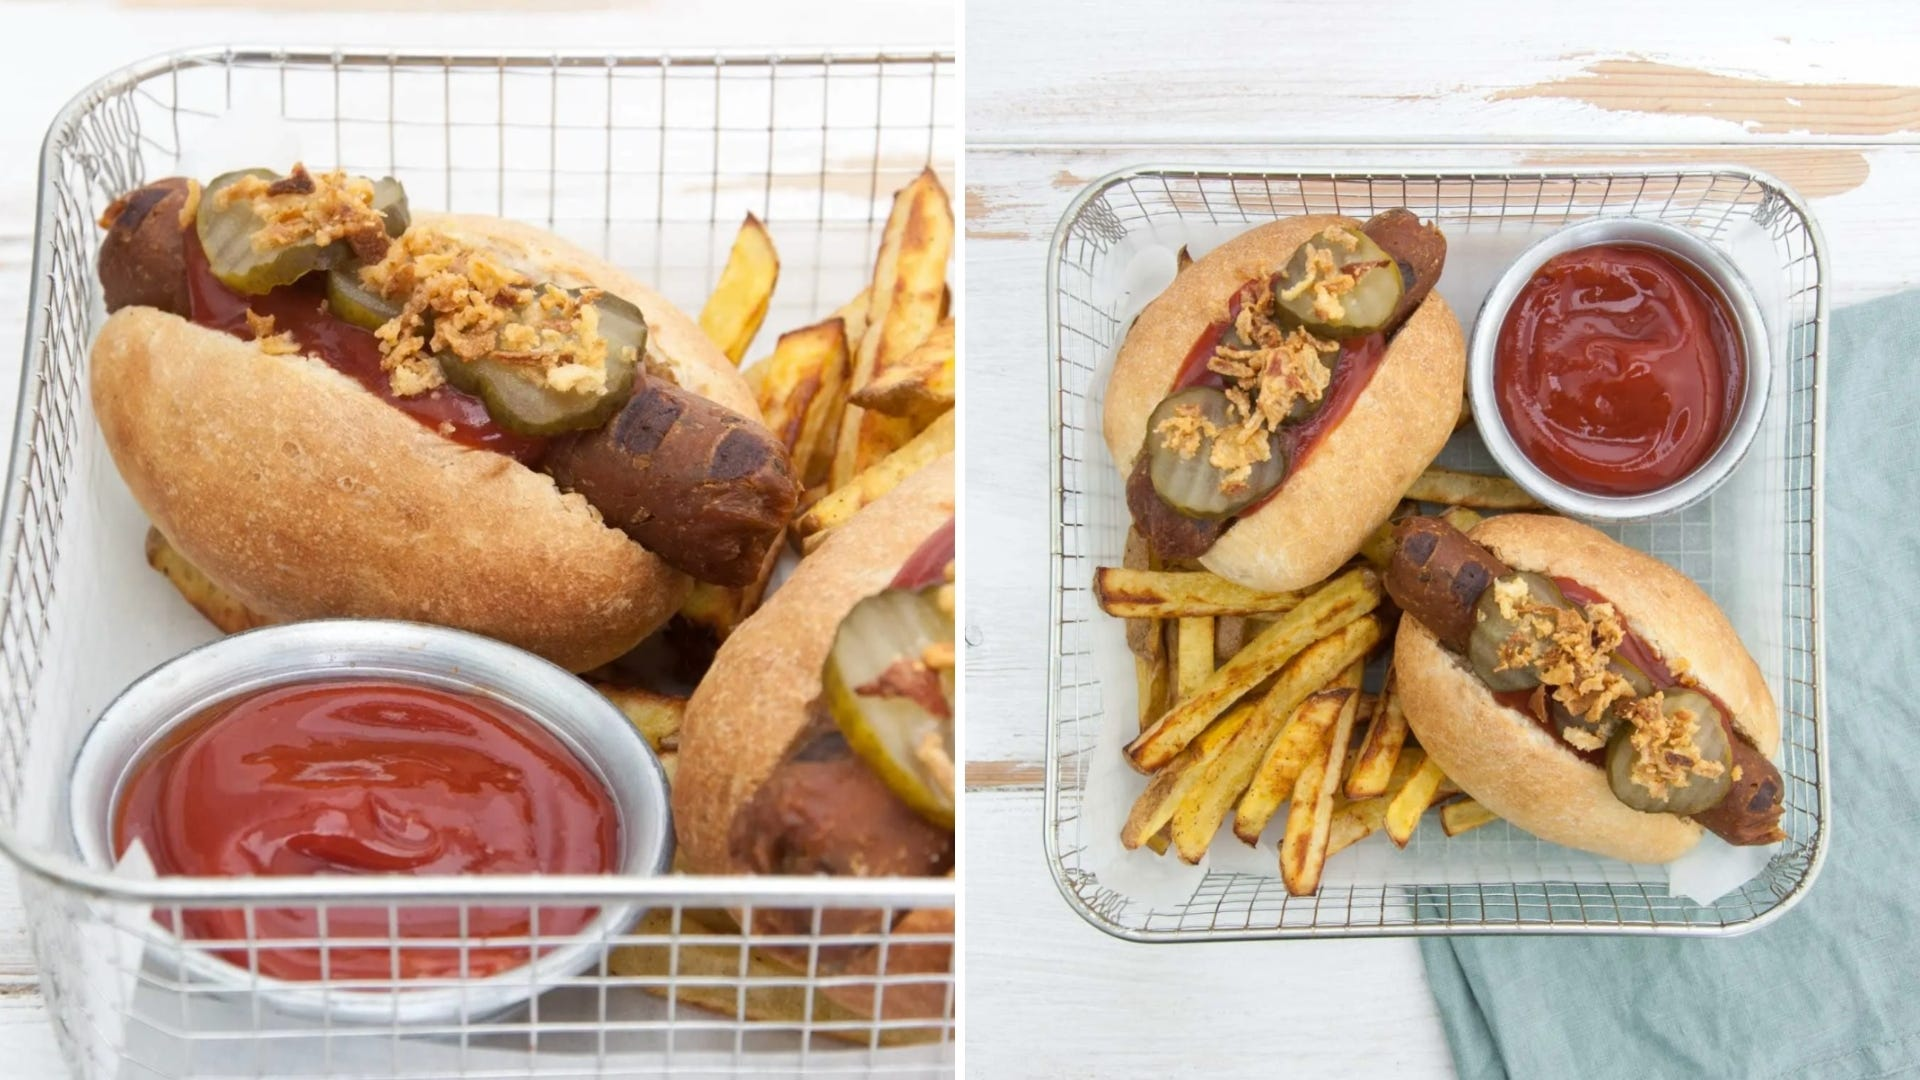 Two pictures of vegan hot dogs in basket